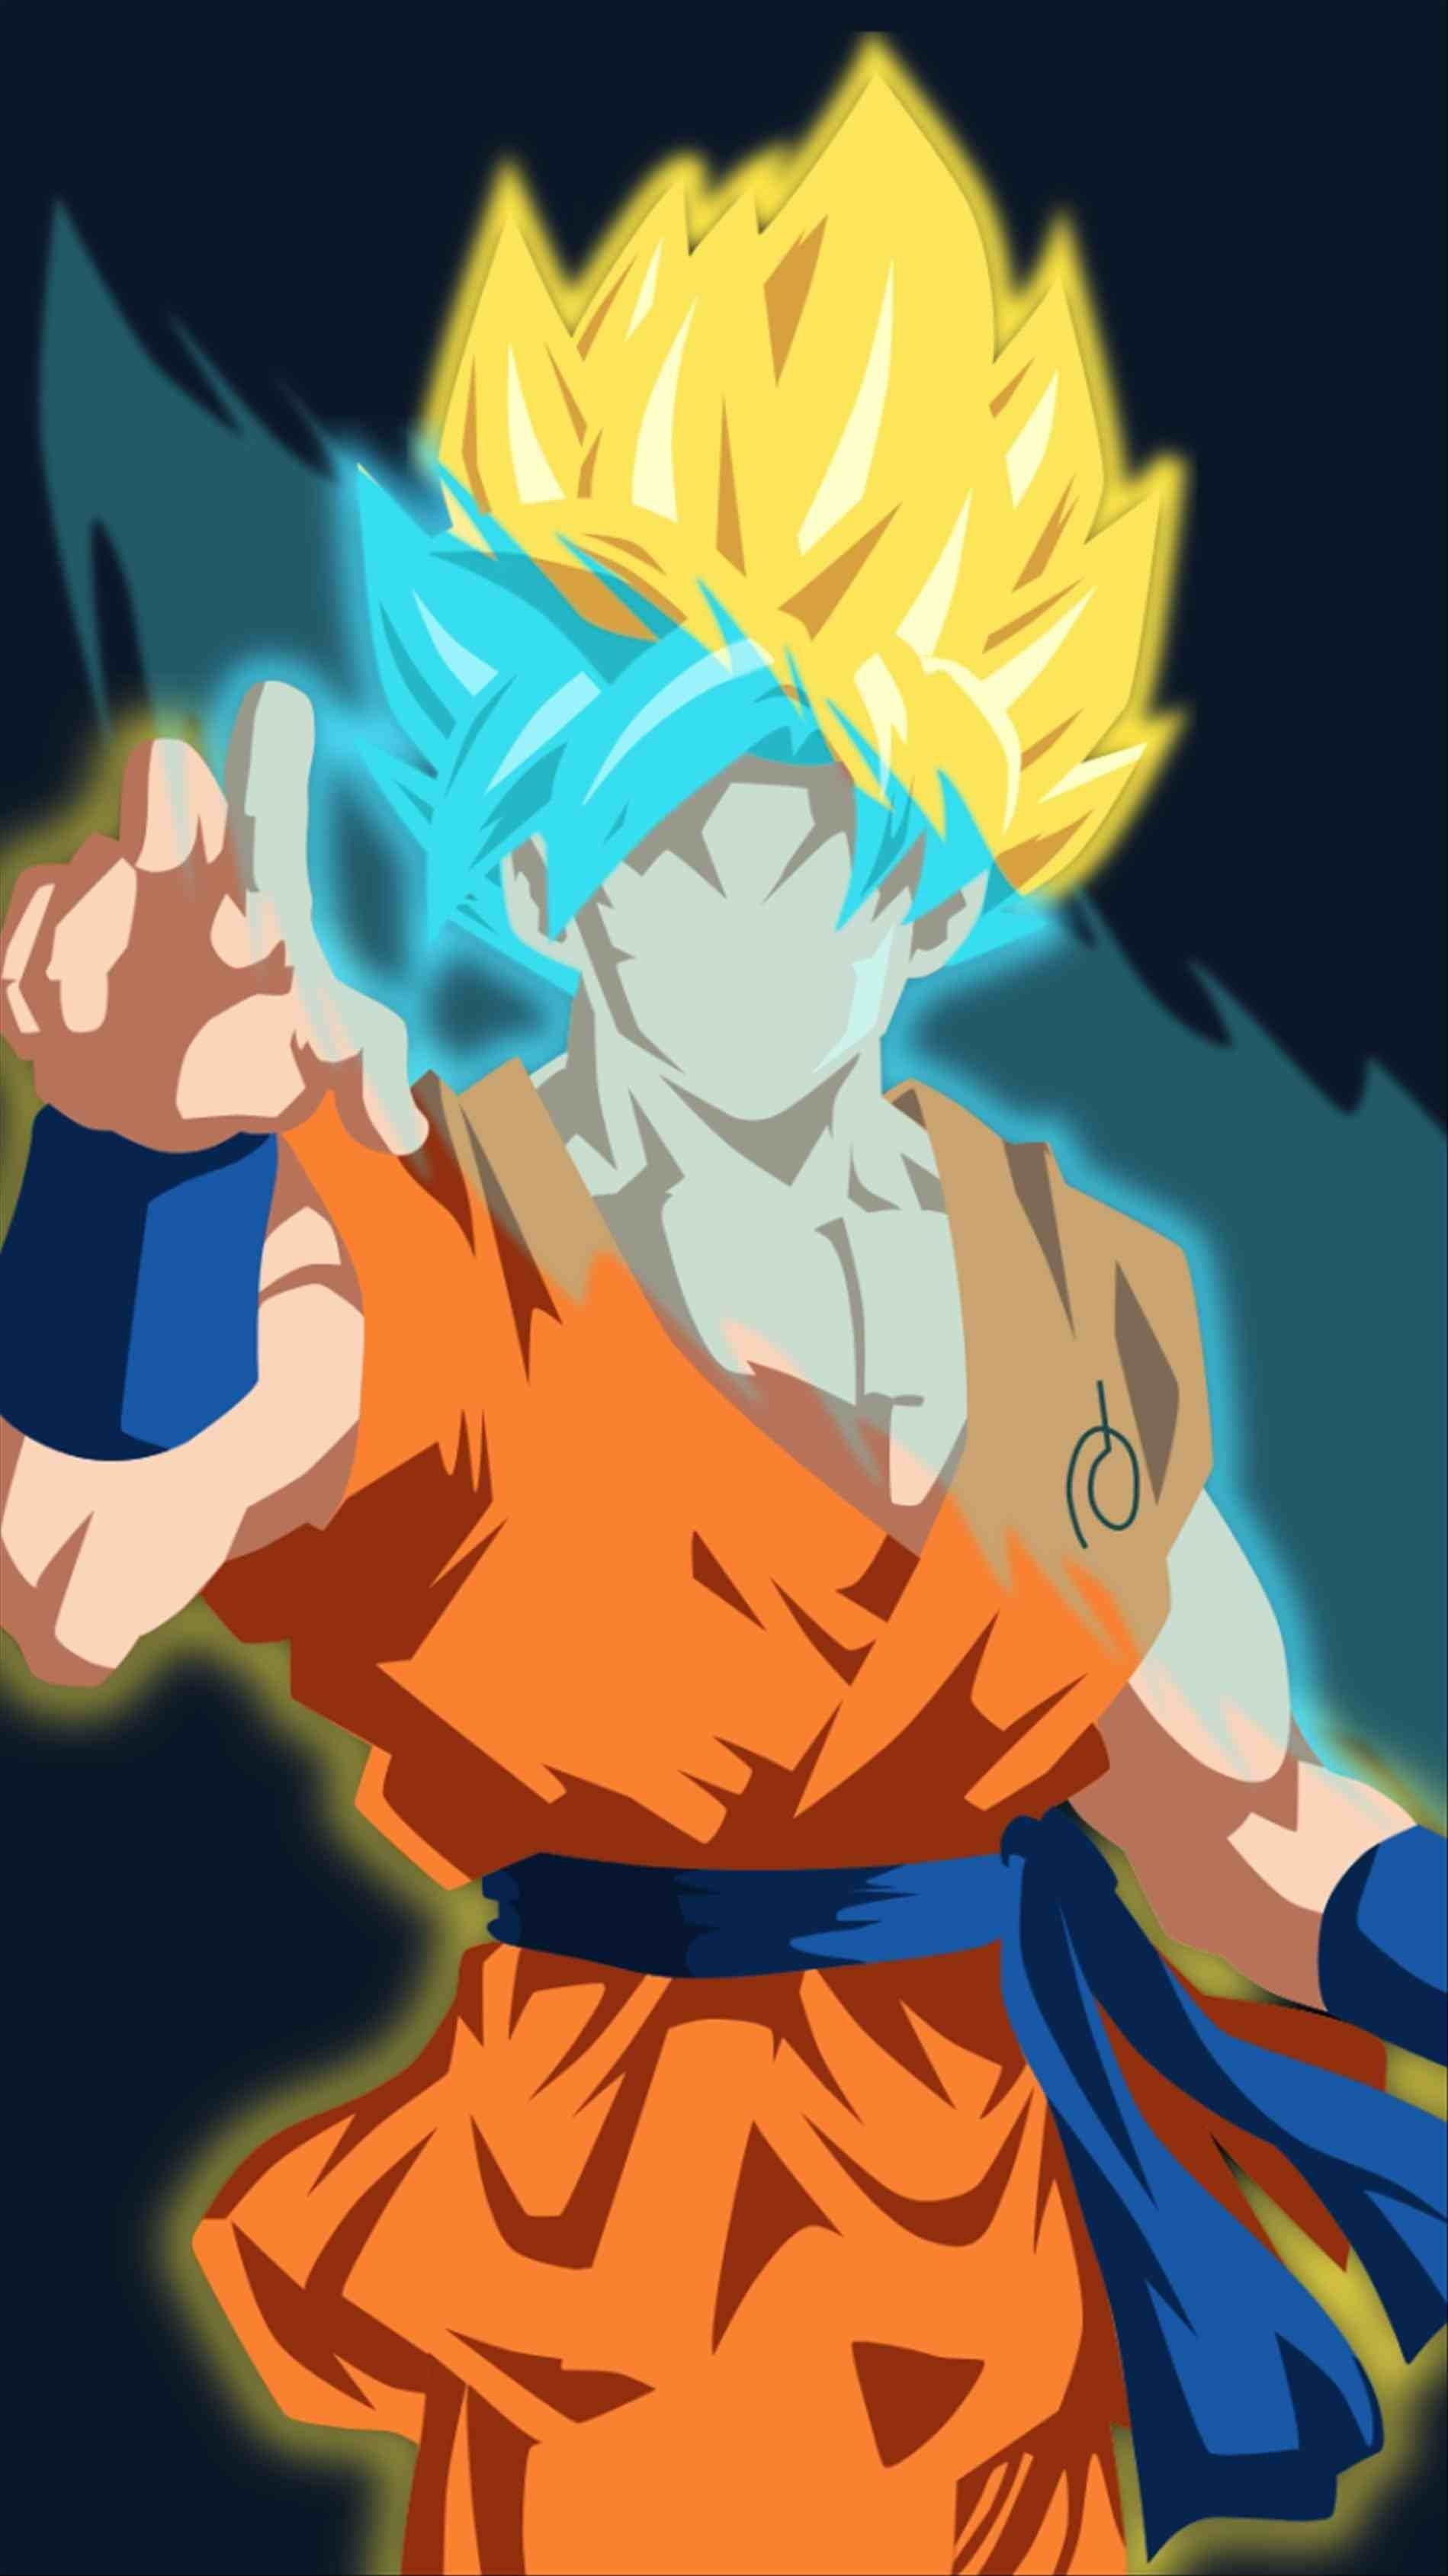 Dragon Ball Phone Wallpapers Top Free Dragon Ball Phone Backgrounds Wallpaperaccess